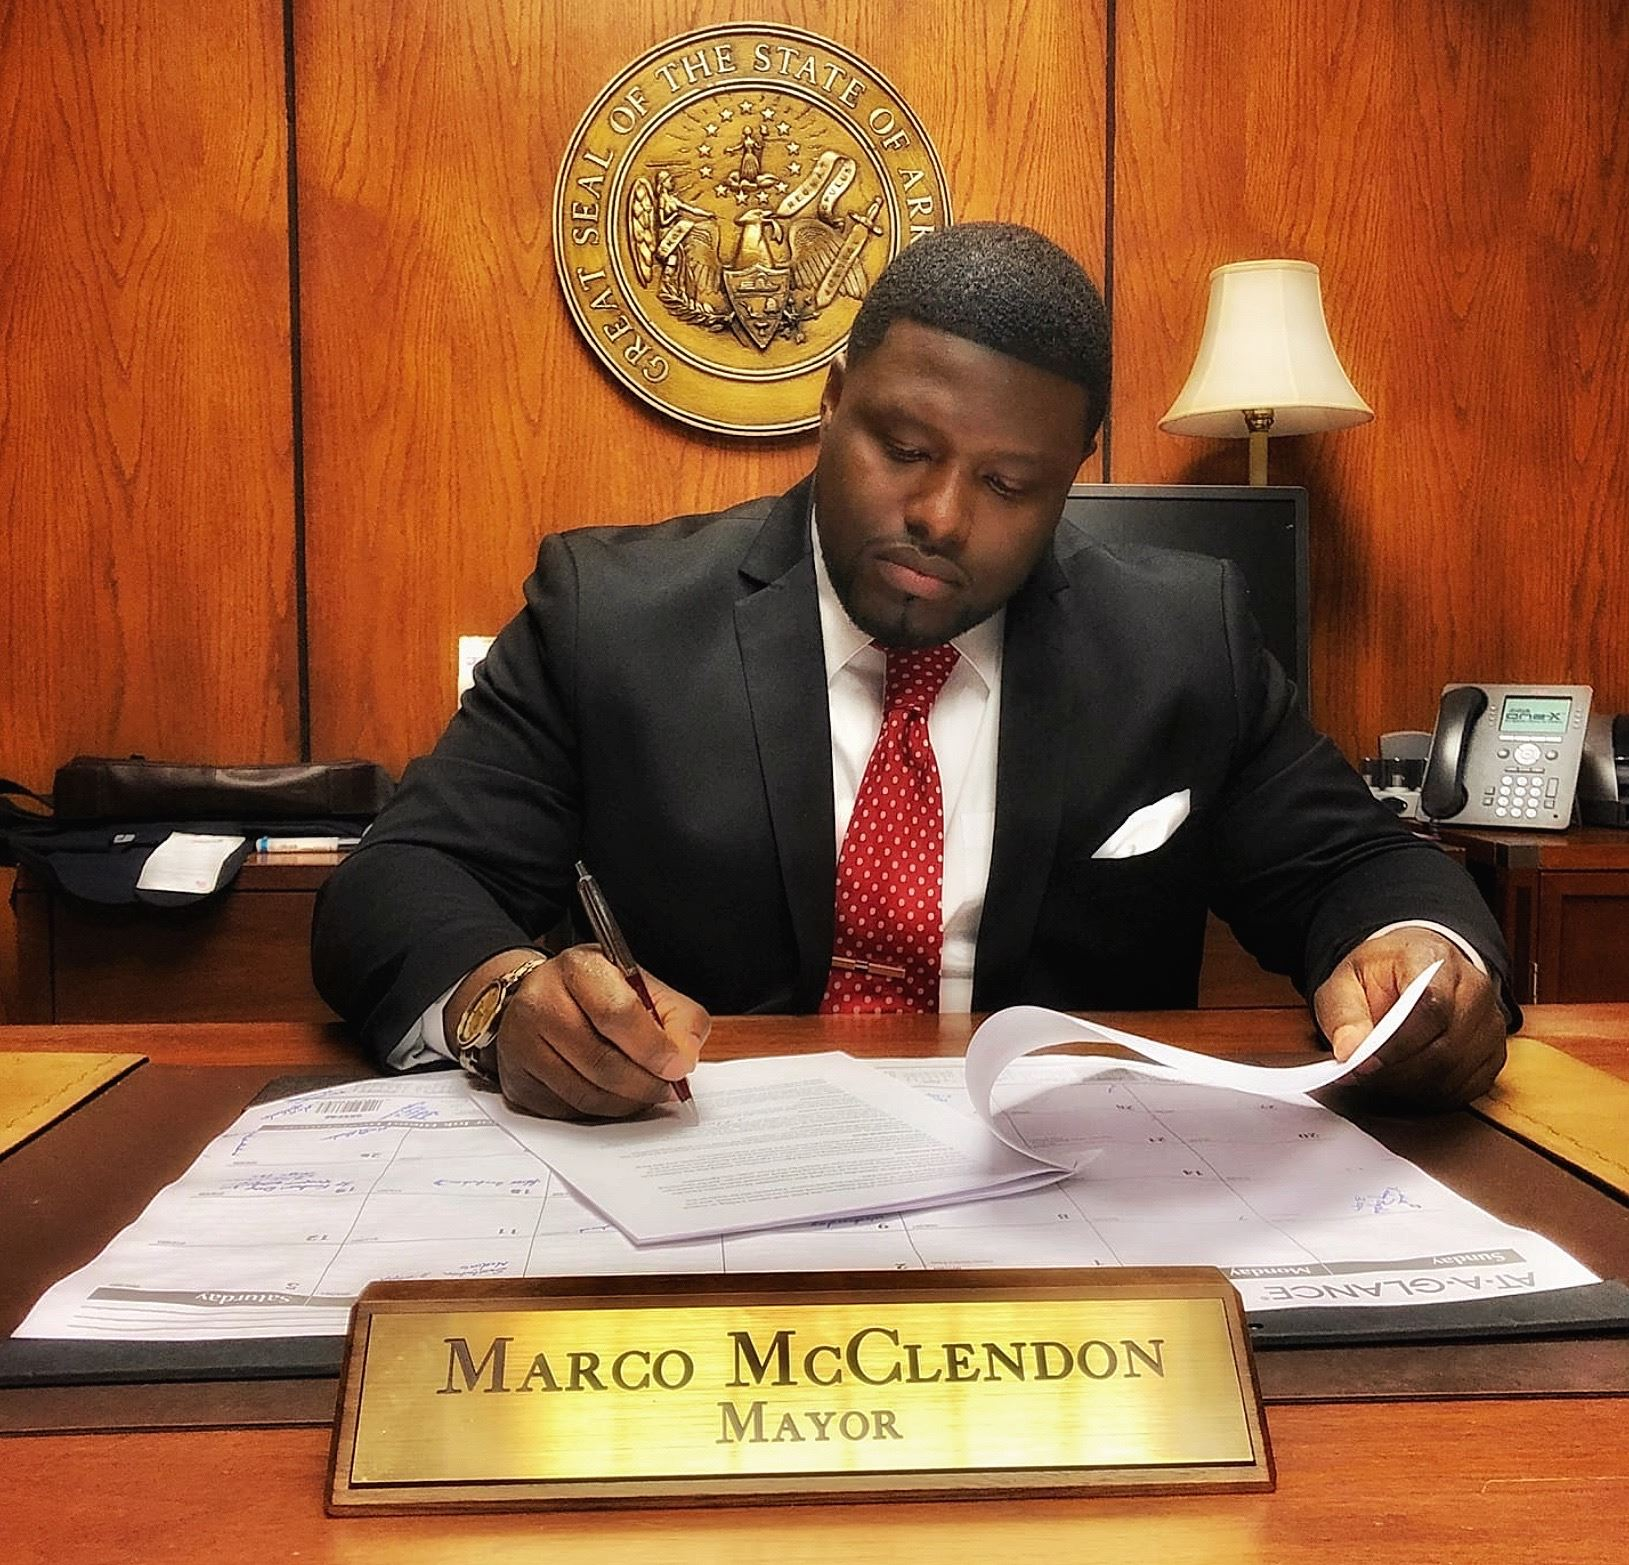 Mayor Marco McClendon, Mayor of West Memphis, The City of West Memphis, Desk